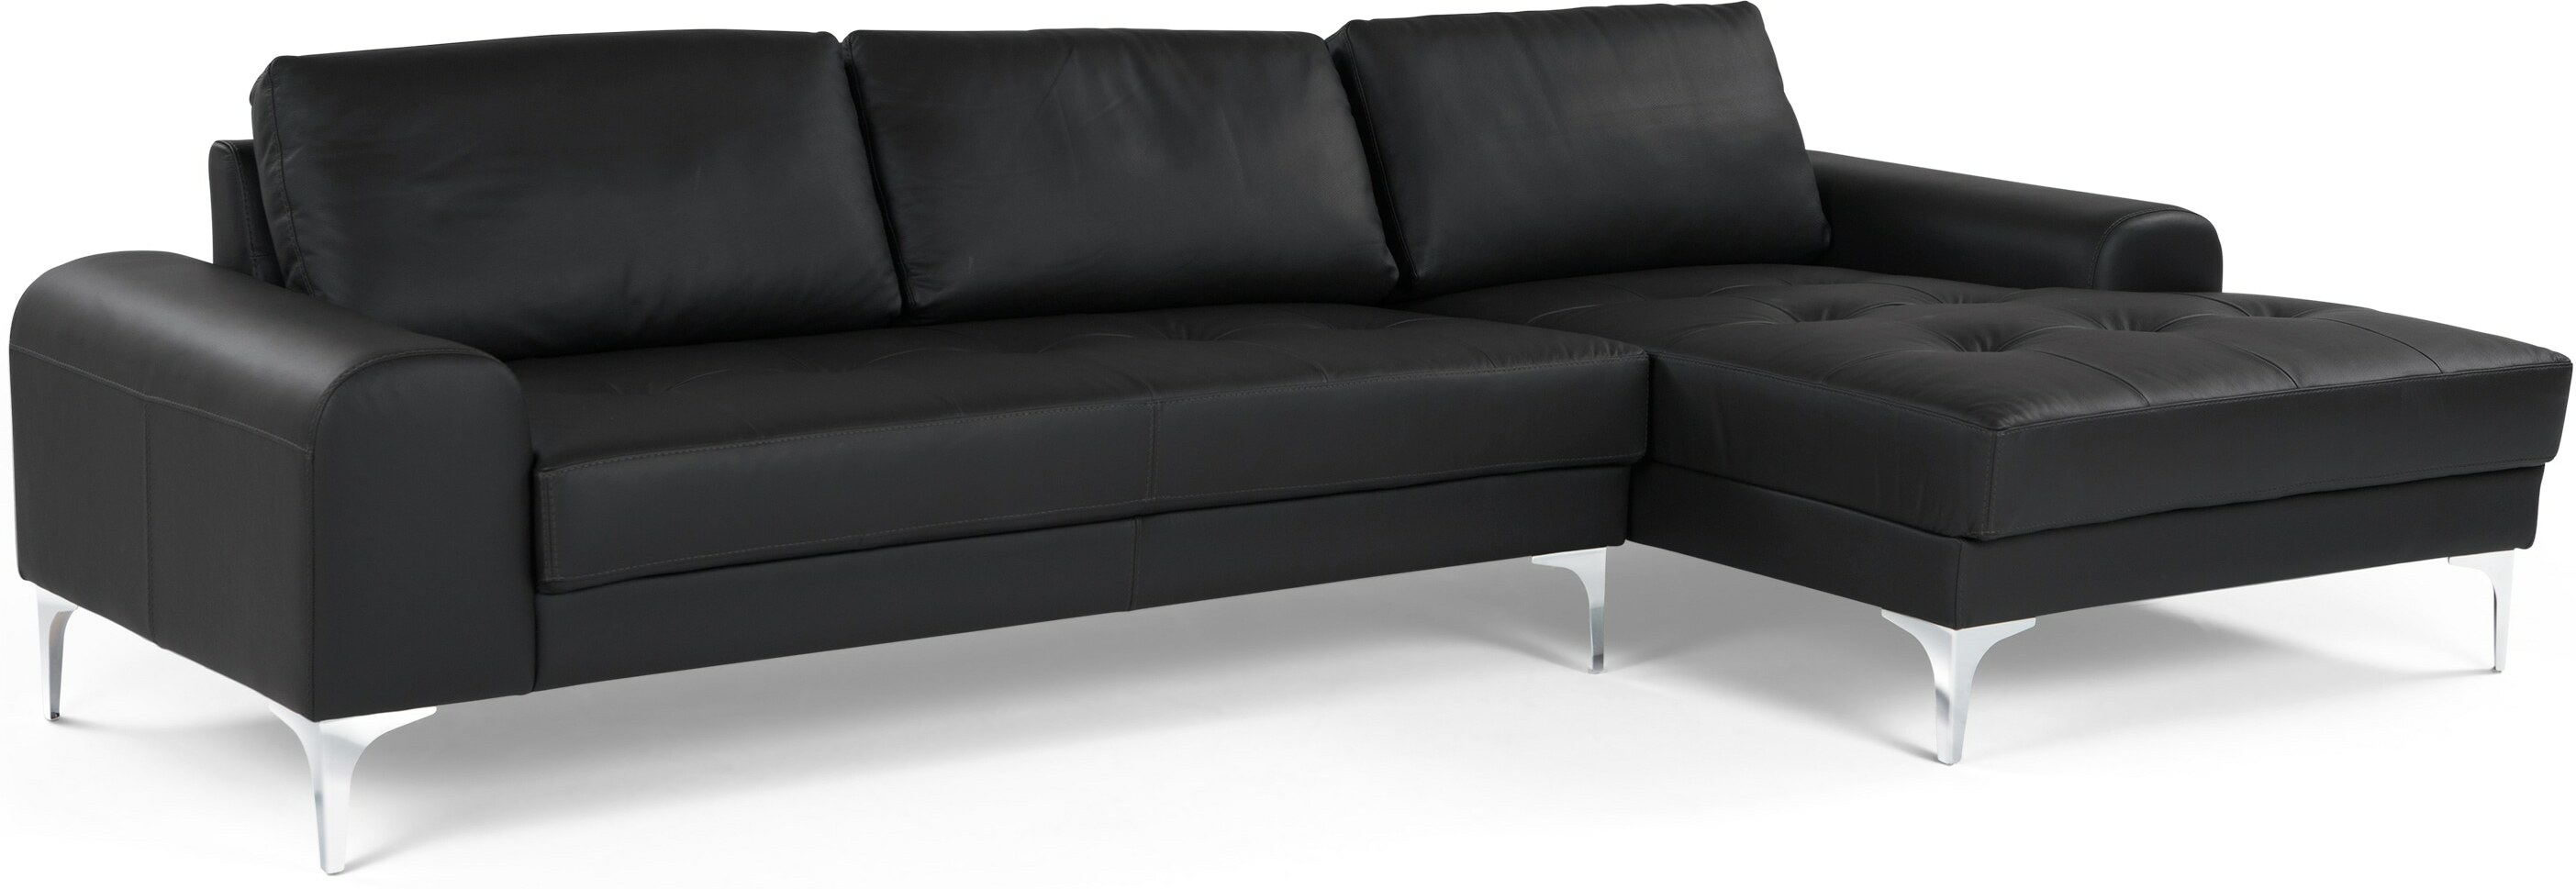 Buy Cheap Italian Leather Sofa Compare Sofas Prices For